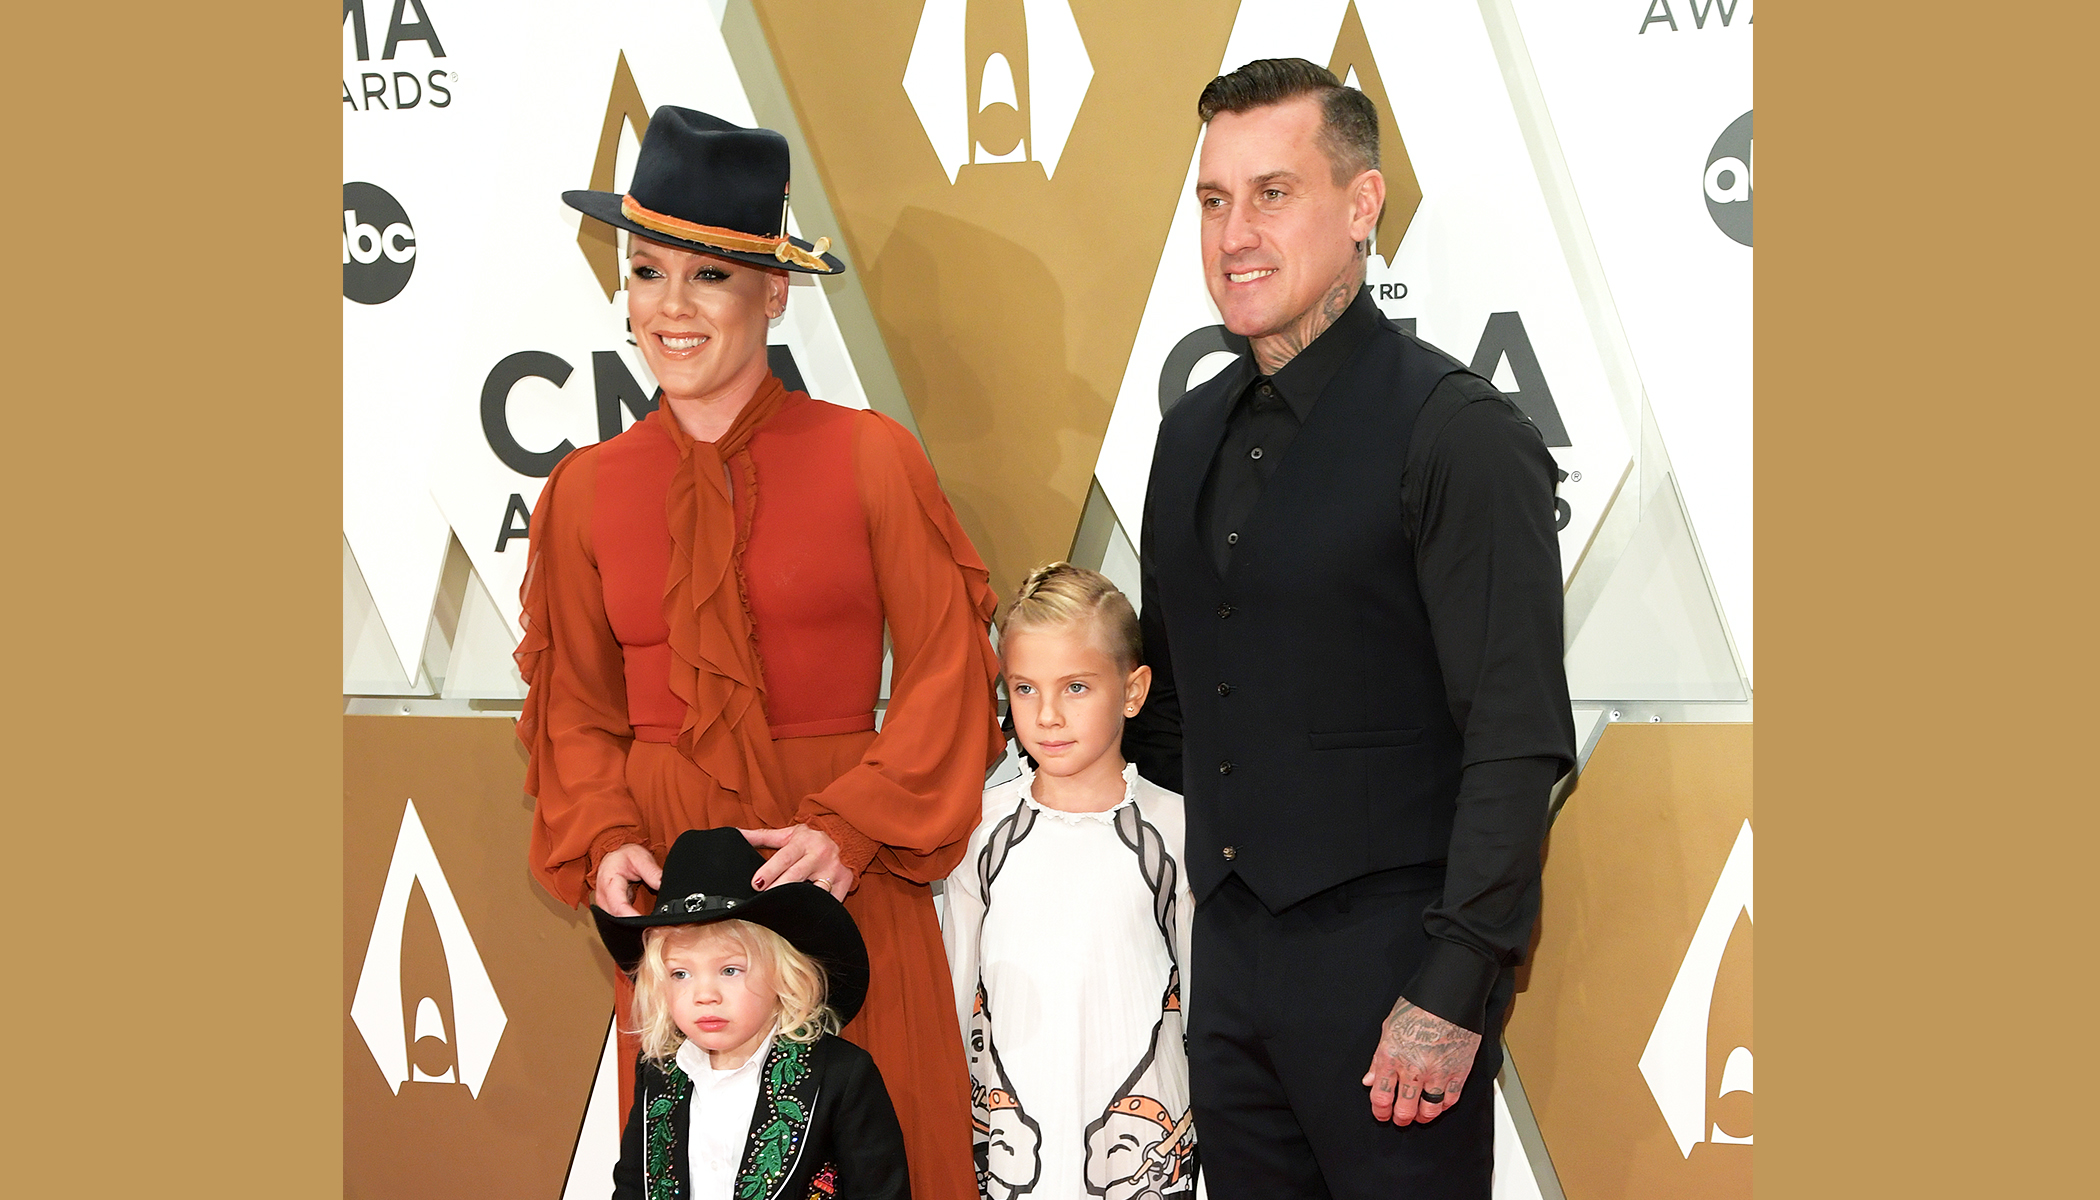 'It's the Year of the Family': Pink Announces Plans to Take a Break From Music